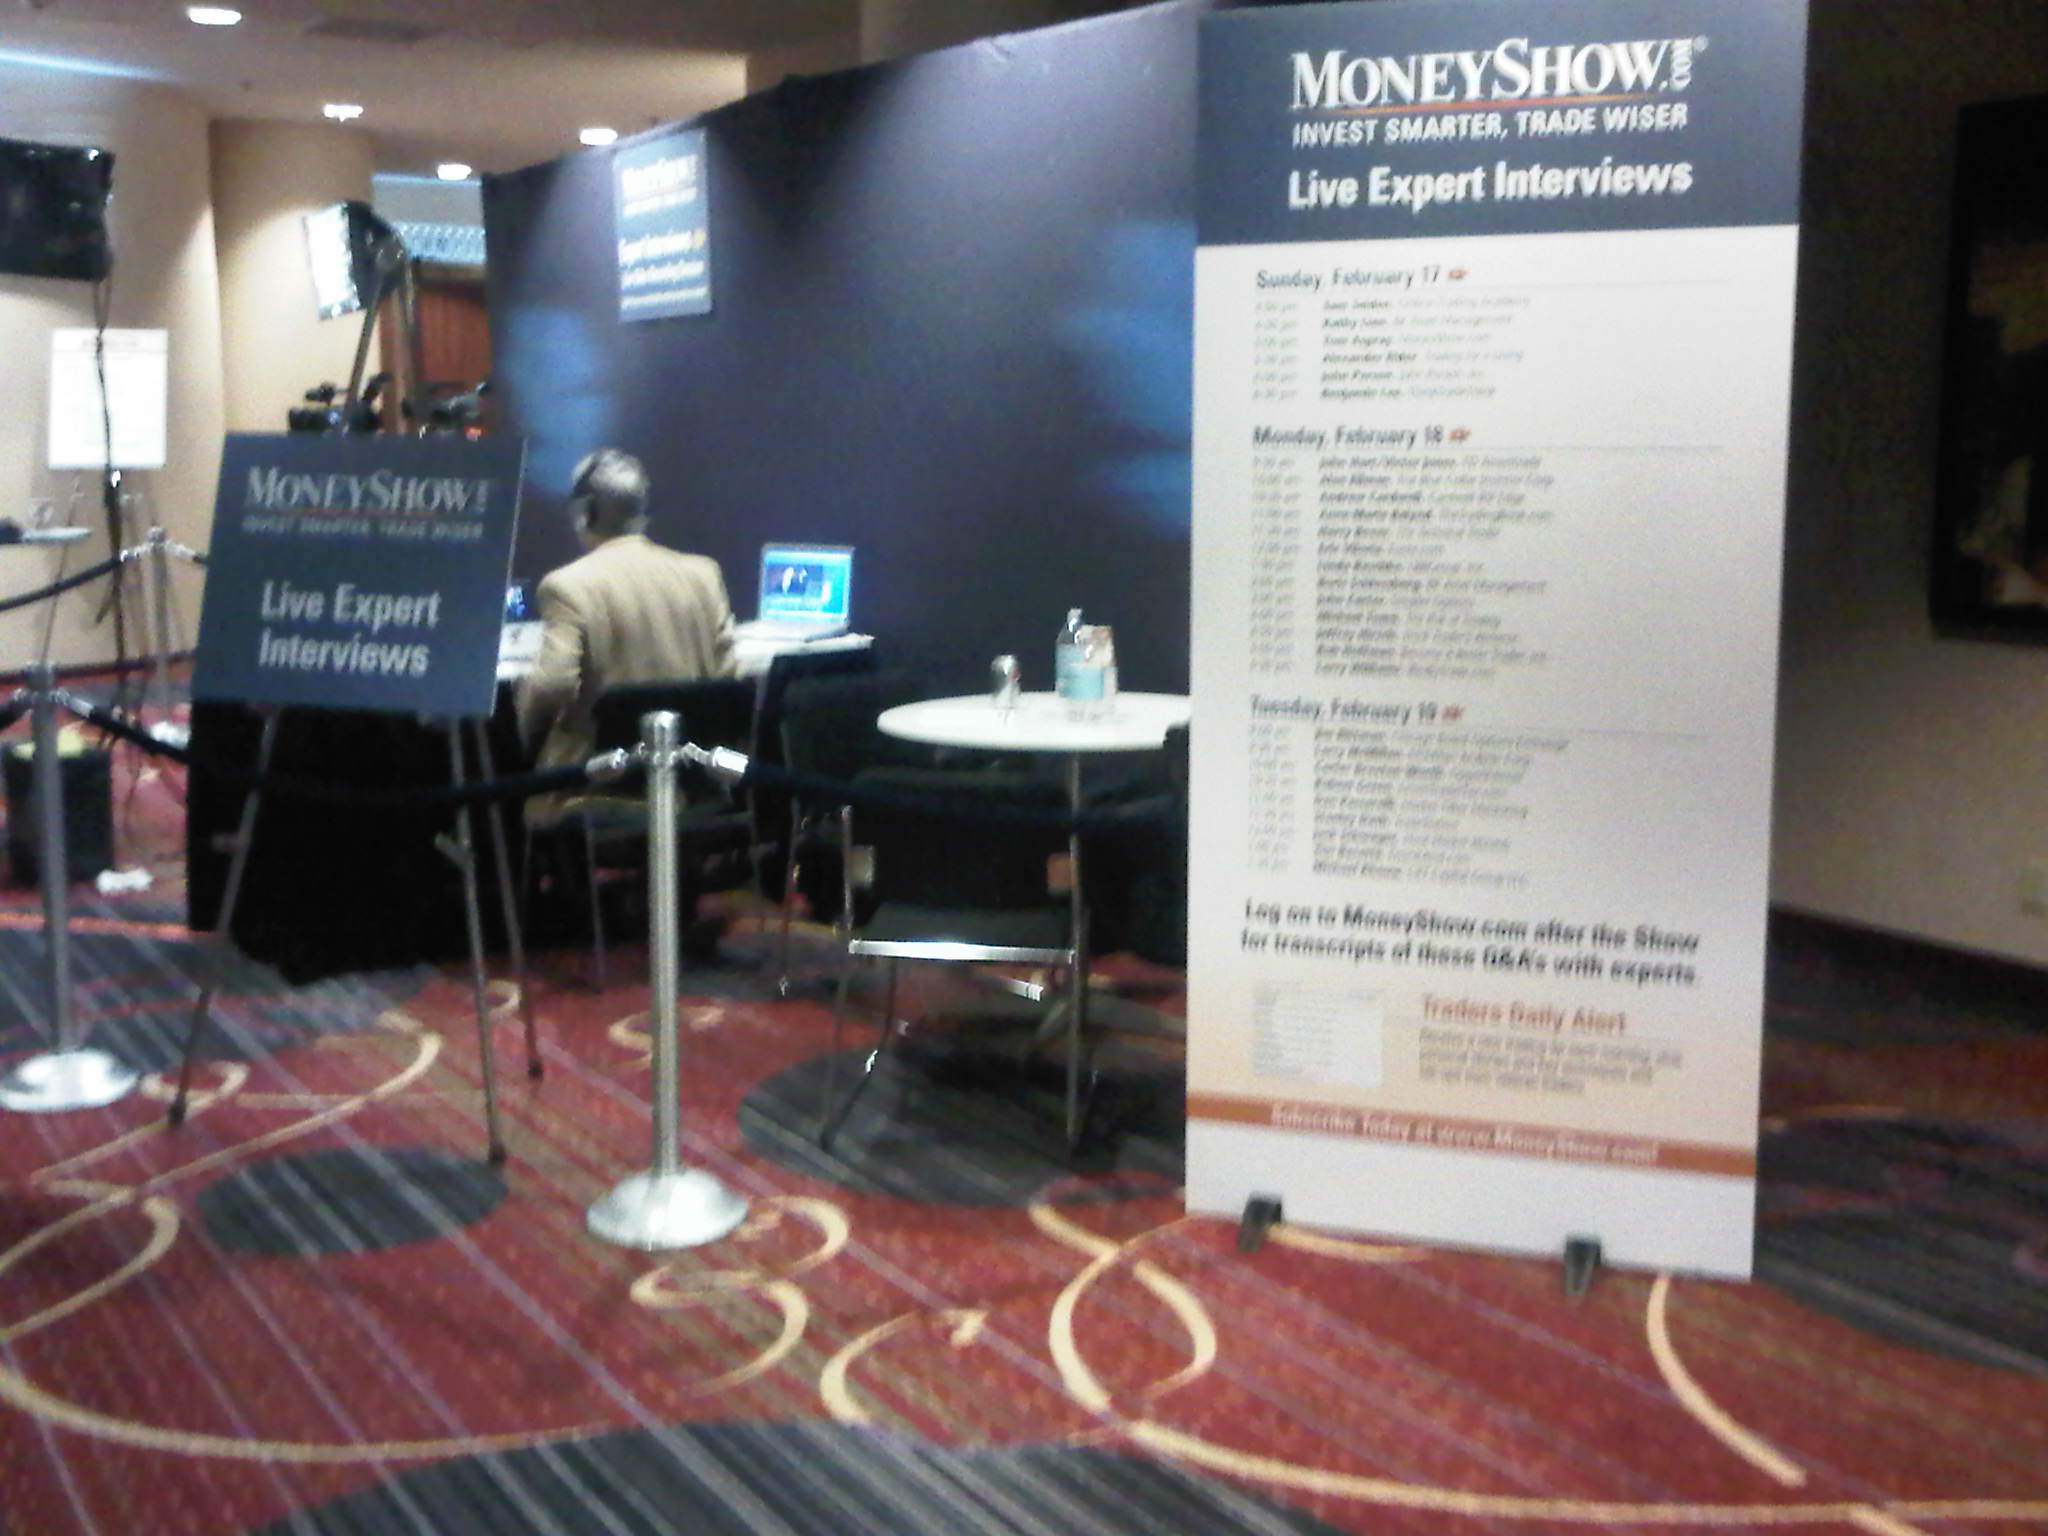 MoneyShow Interview Booth